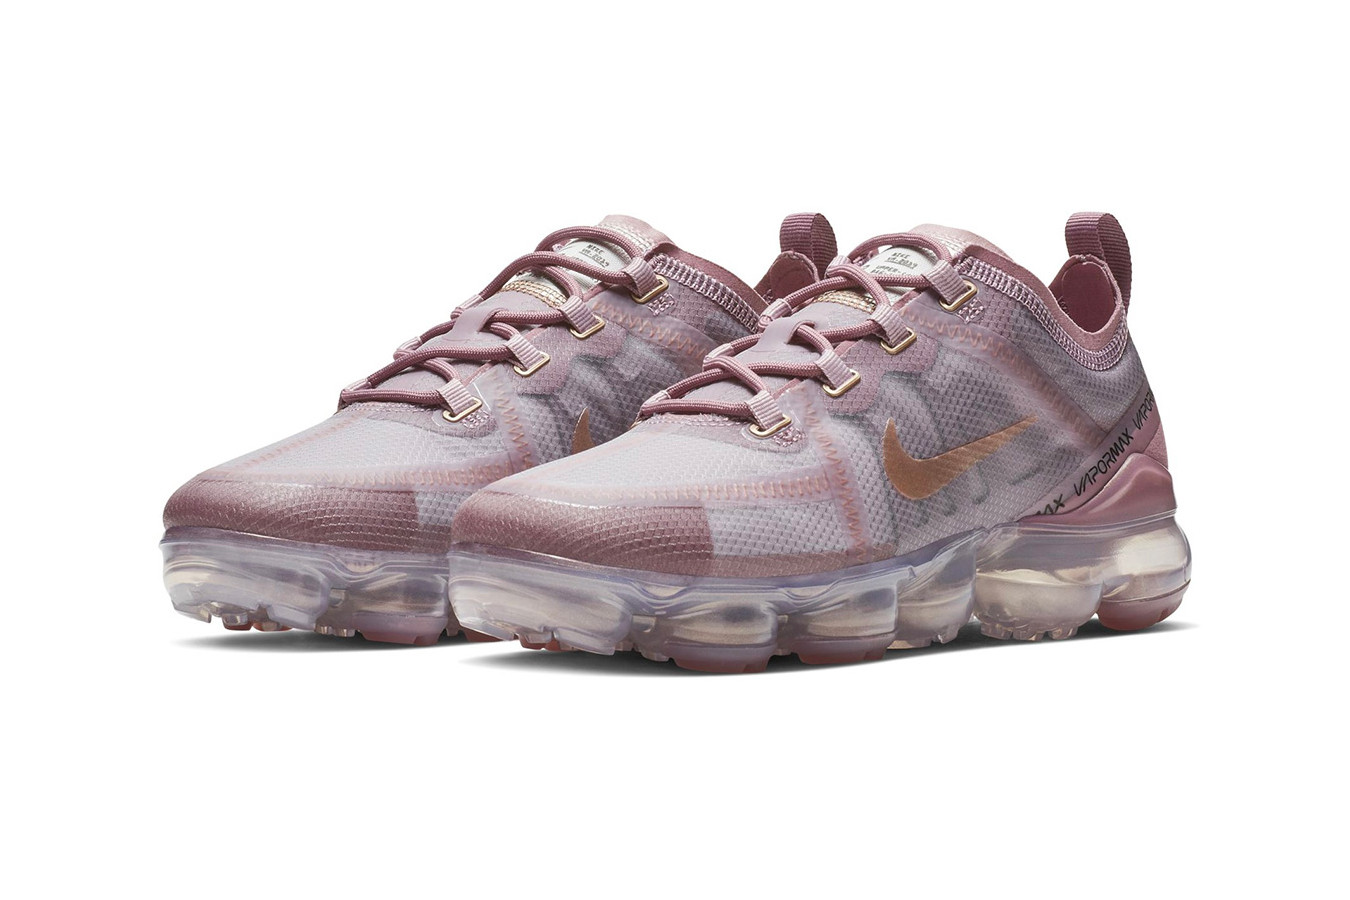 A New Nike Air VaporMax 2019 Colorway